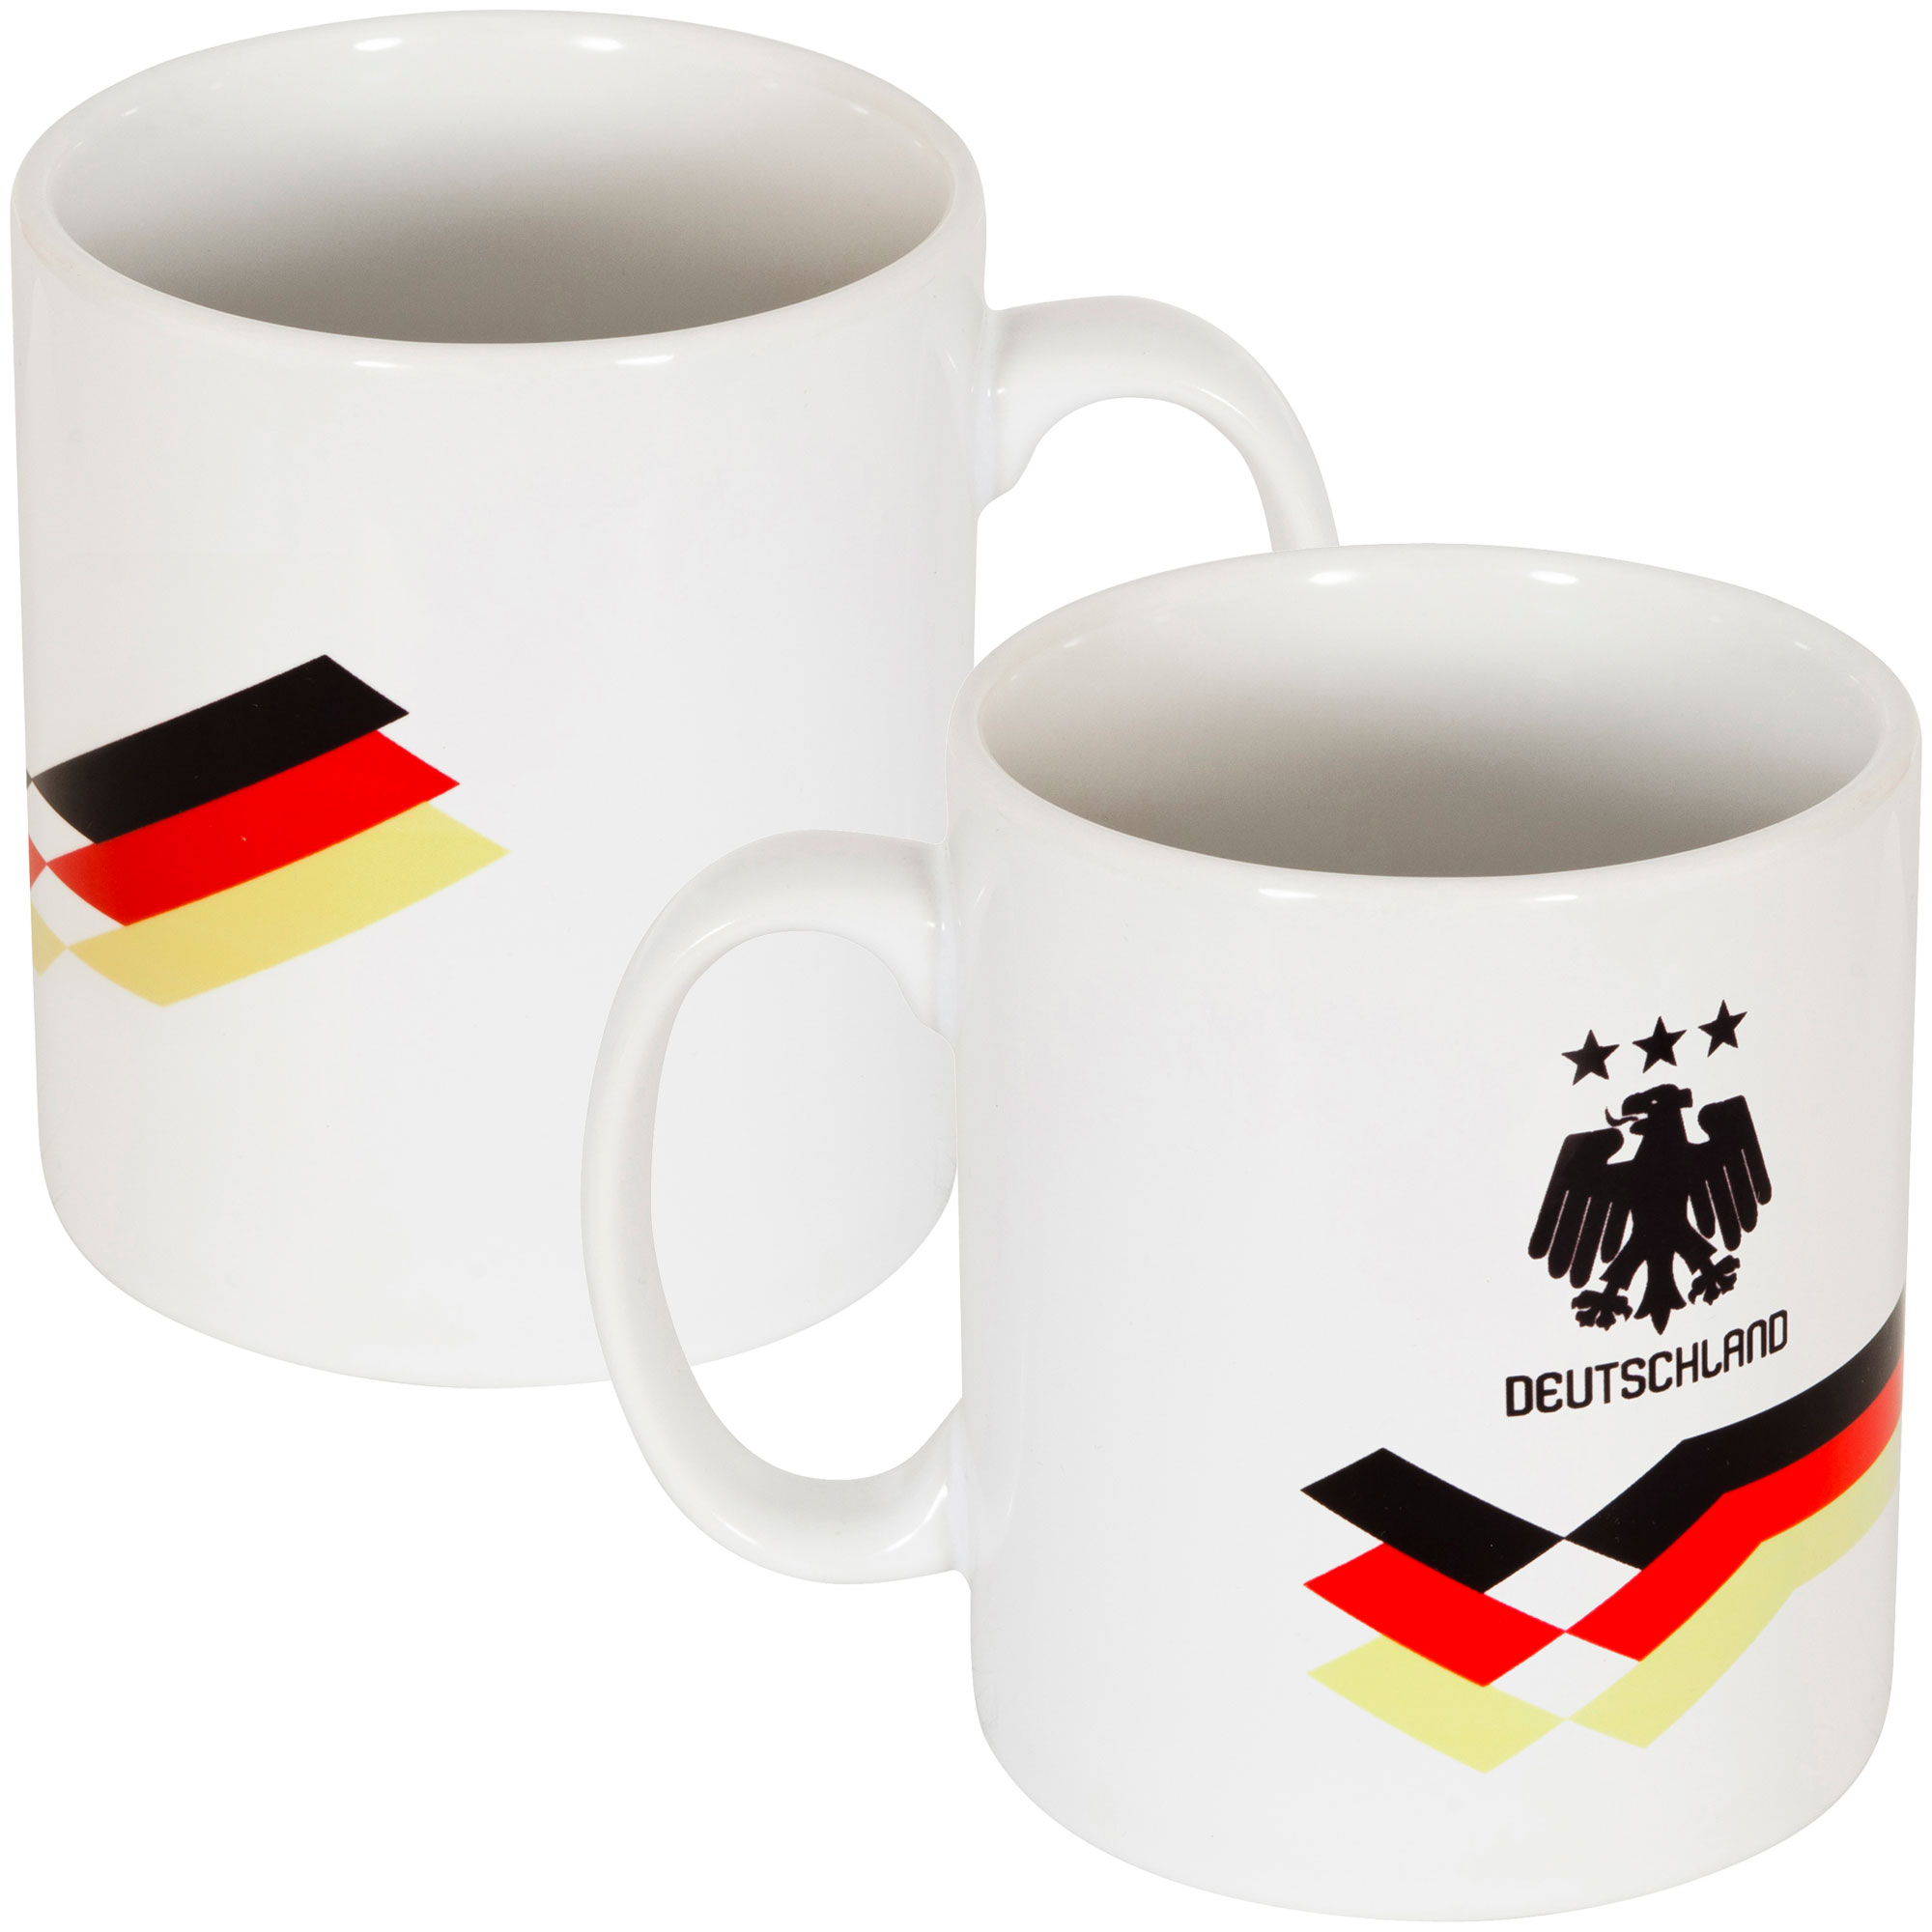 1990 Germany Retro Mug (1 mug included - both sides shown) - OS